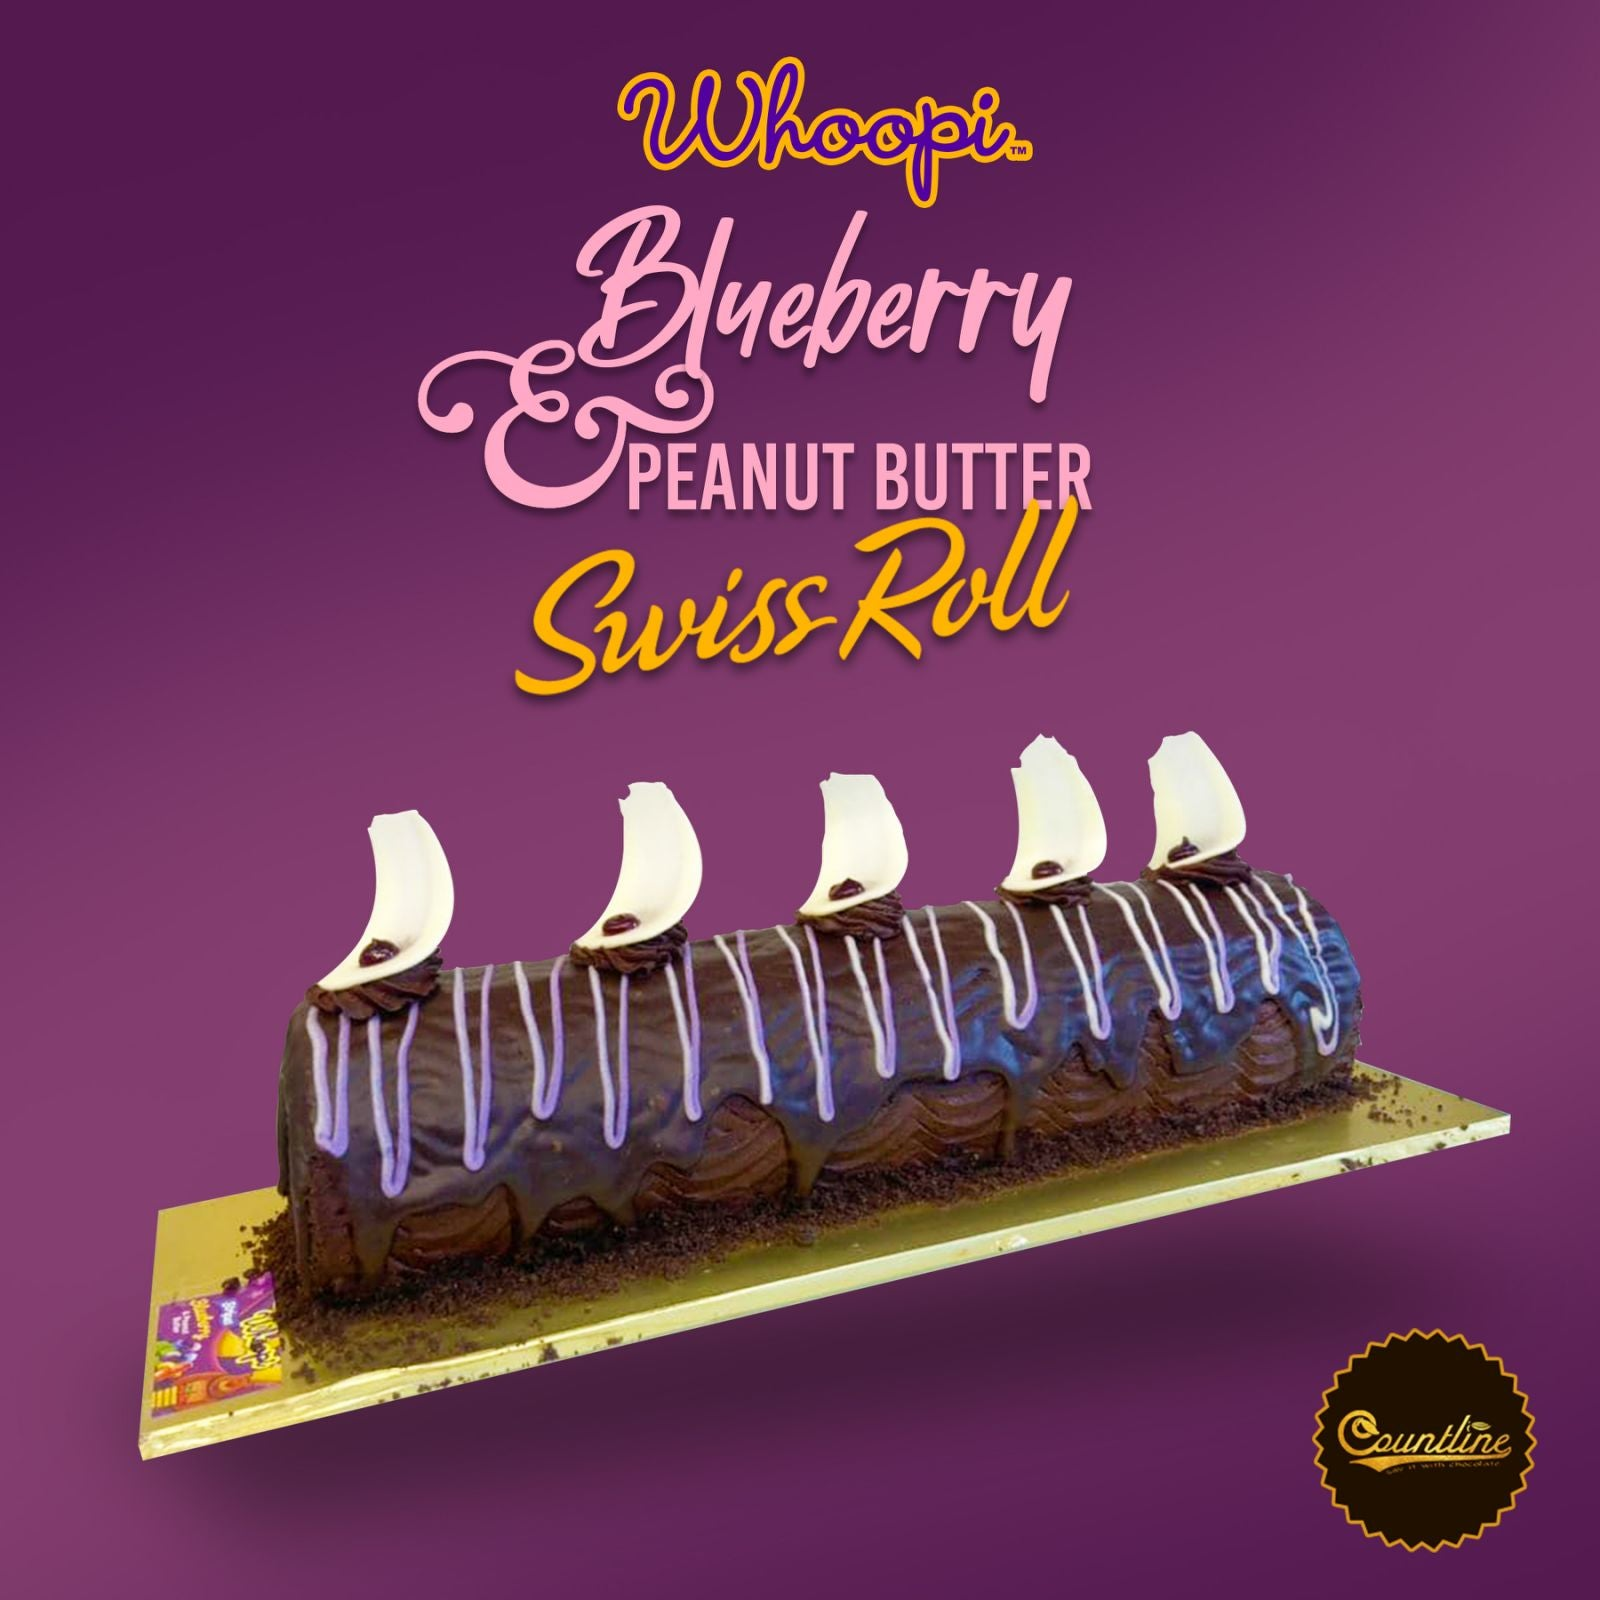 Whoopi Blueberry & Peanut Butter Swiss Roll